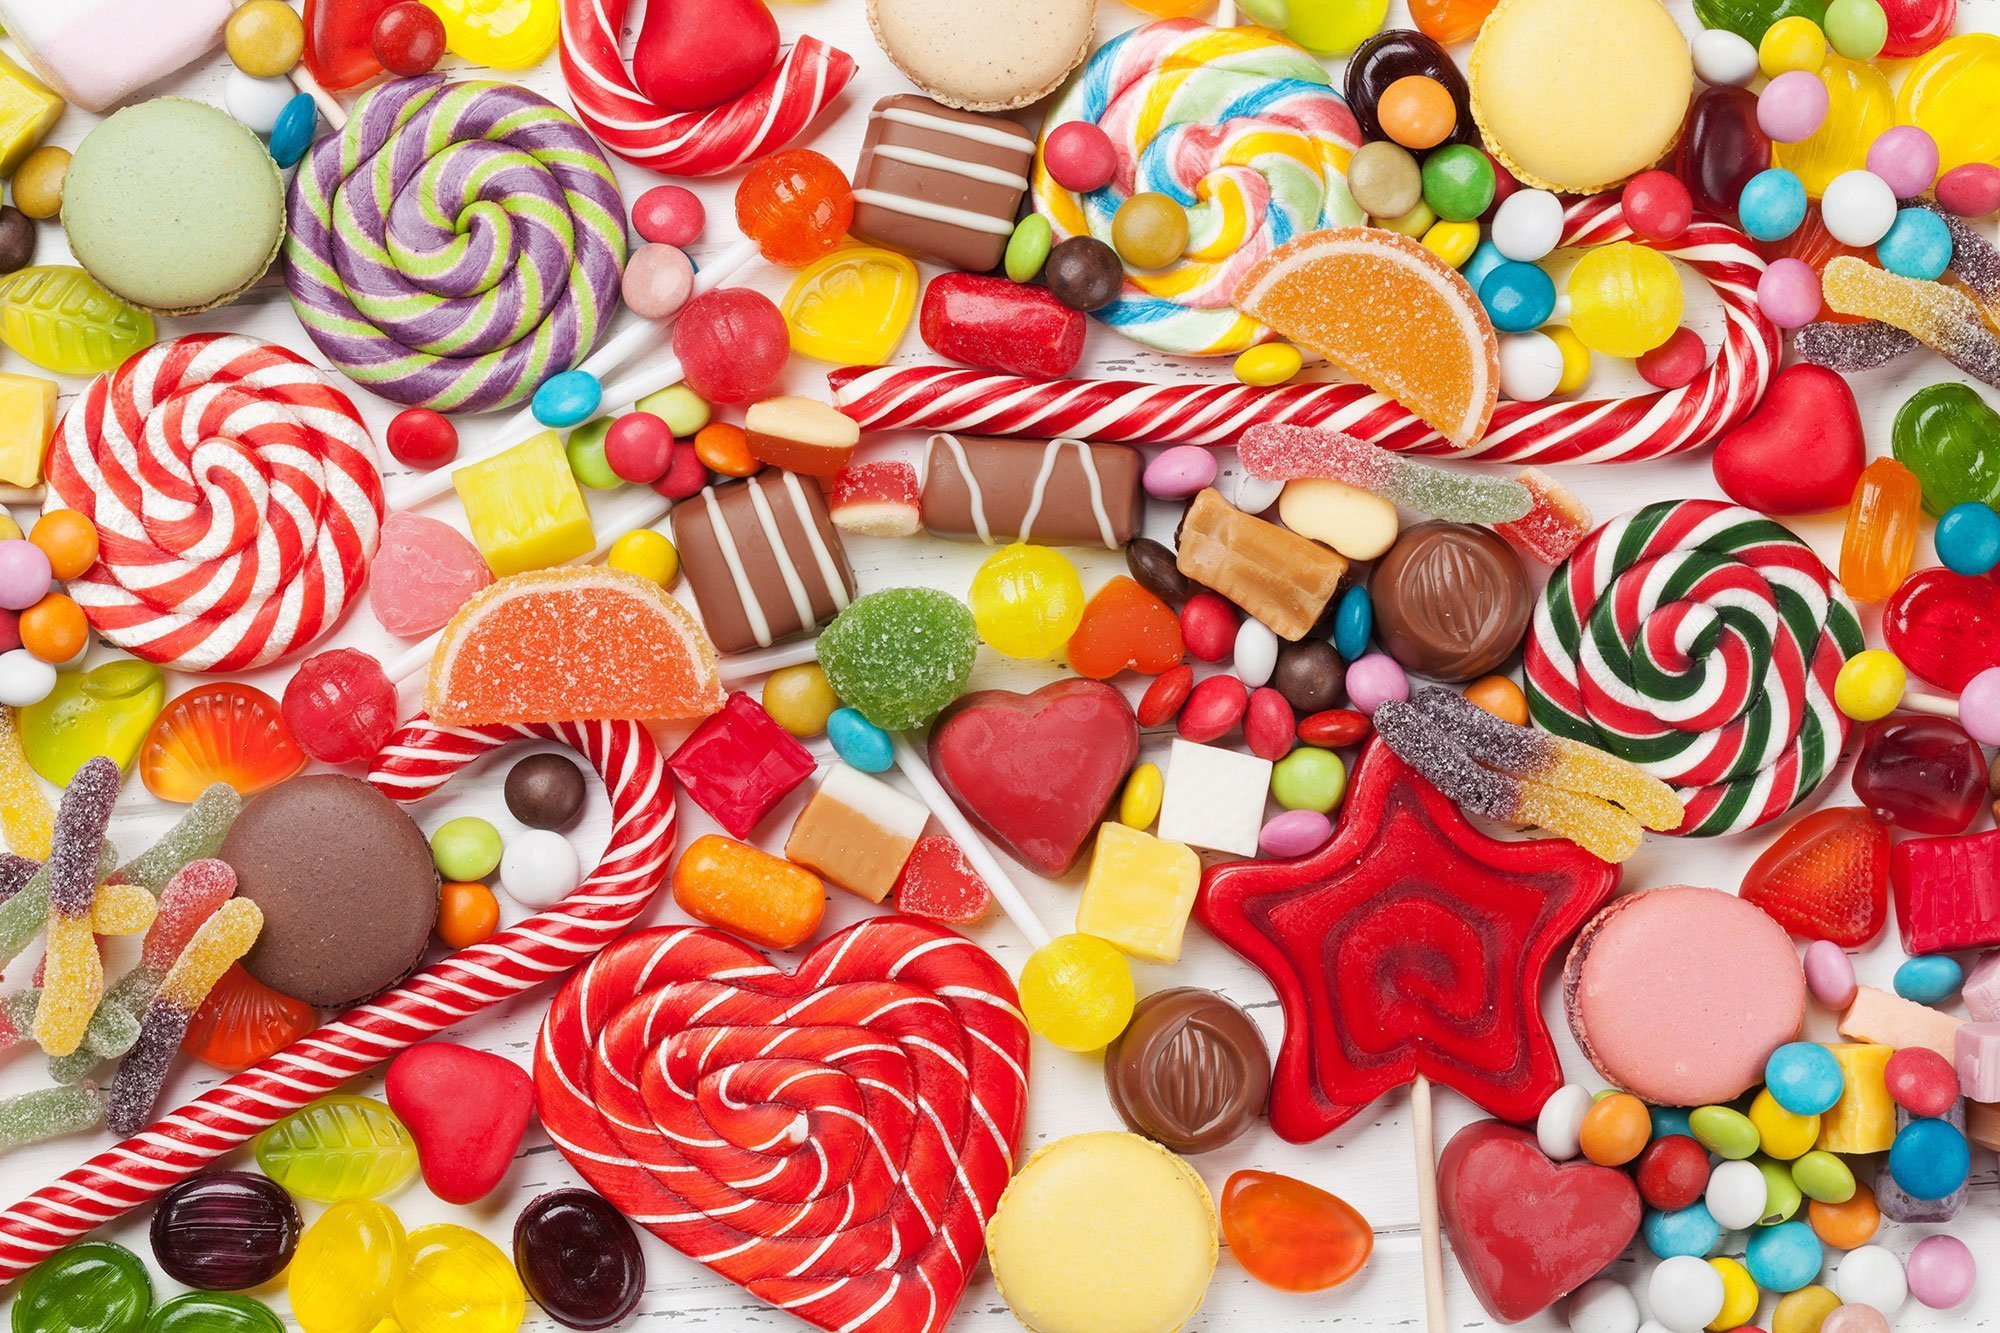 Candy & Confections